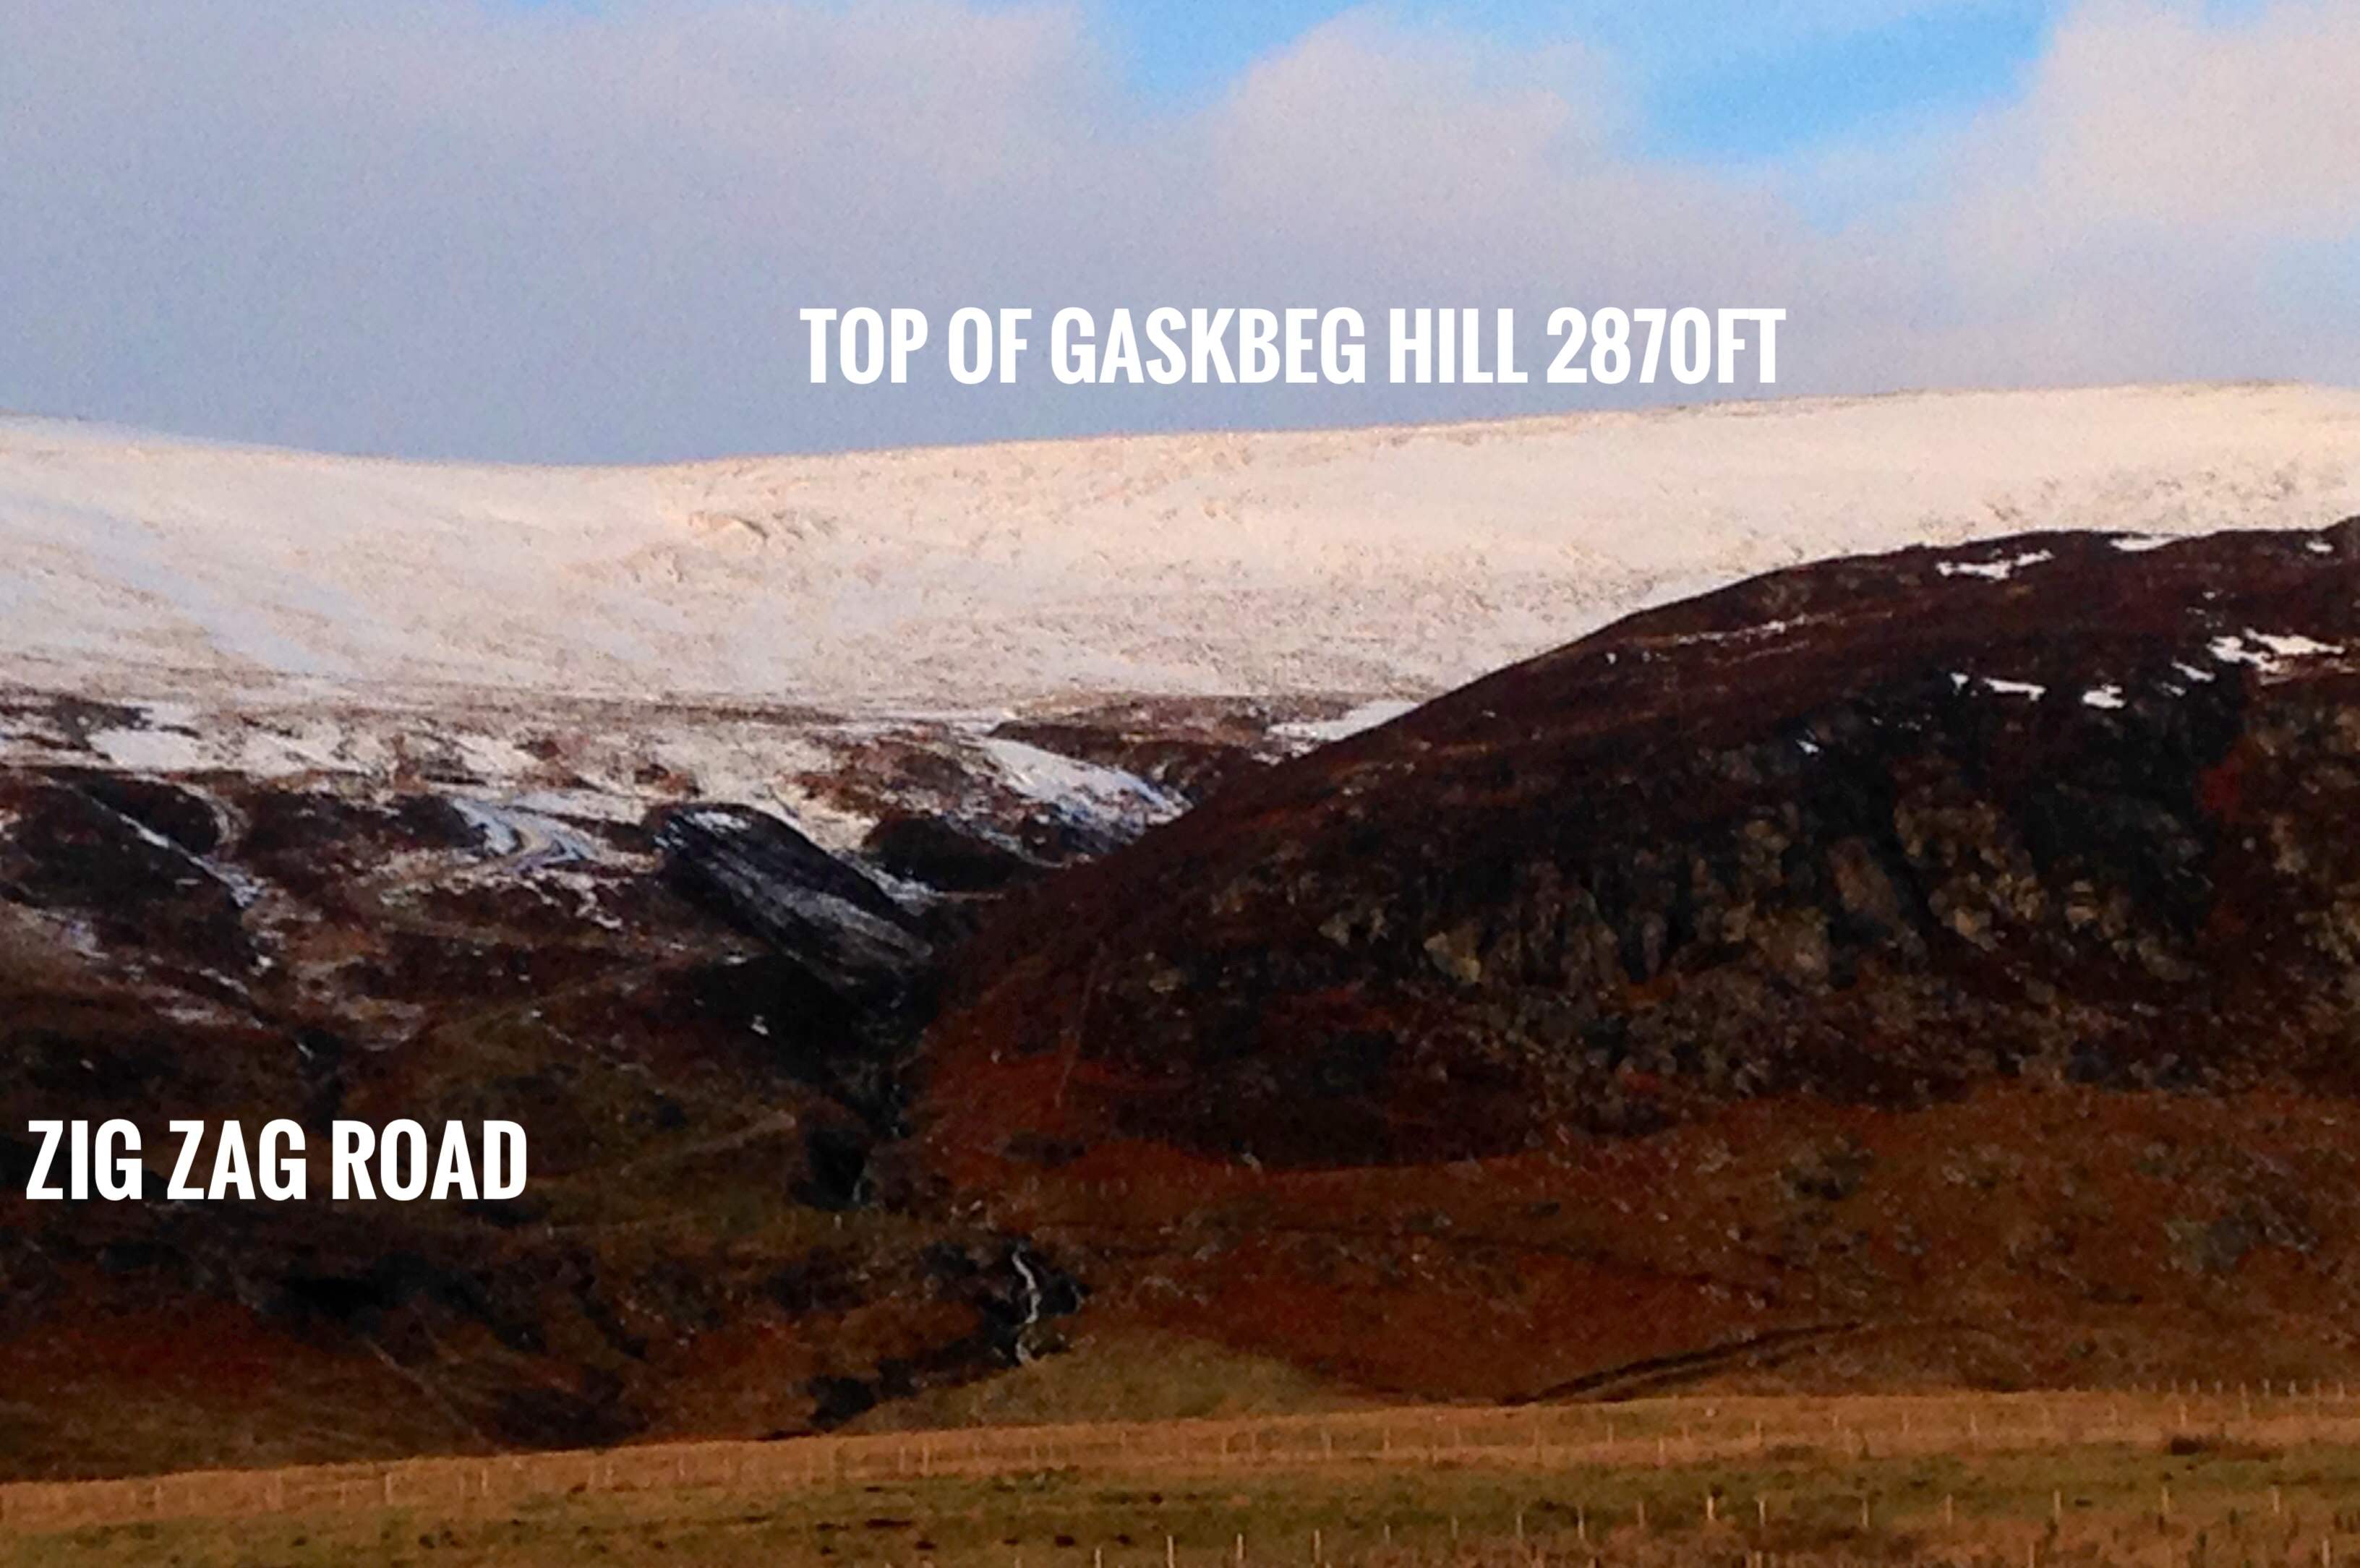 Gaskbeg Hill with a dusting of snow and the height and ZigZag road annotated